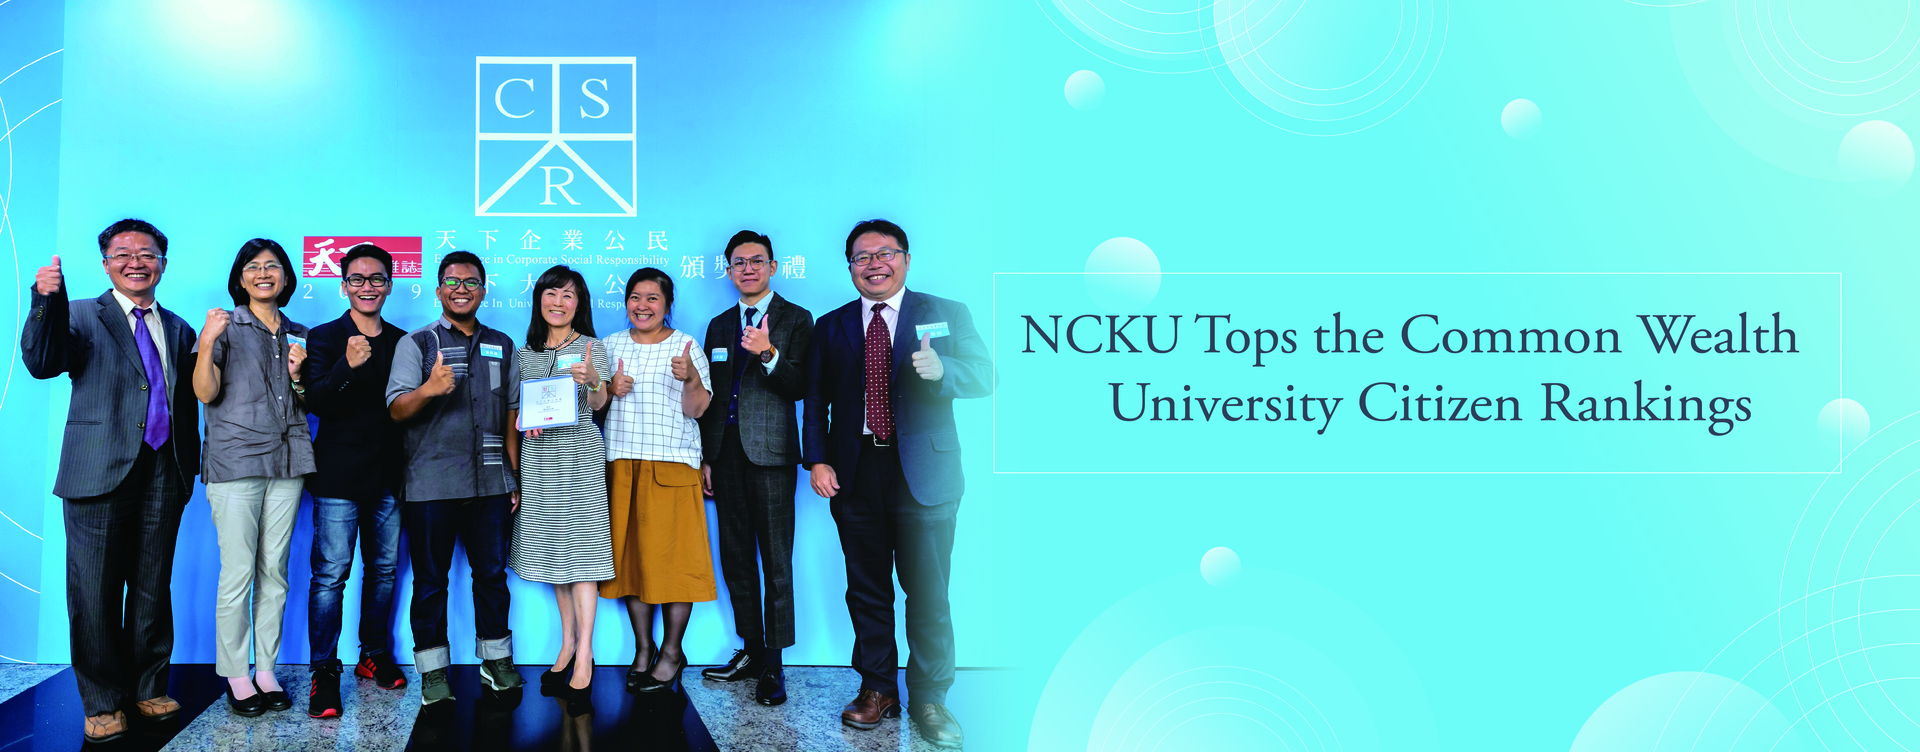 NCKU Tops the CommonWealth University Citizen Rankings